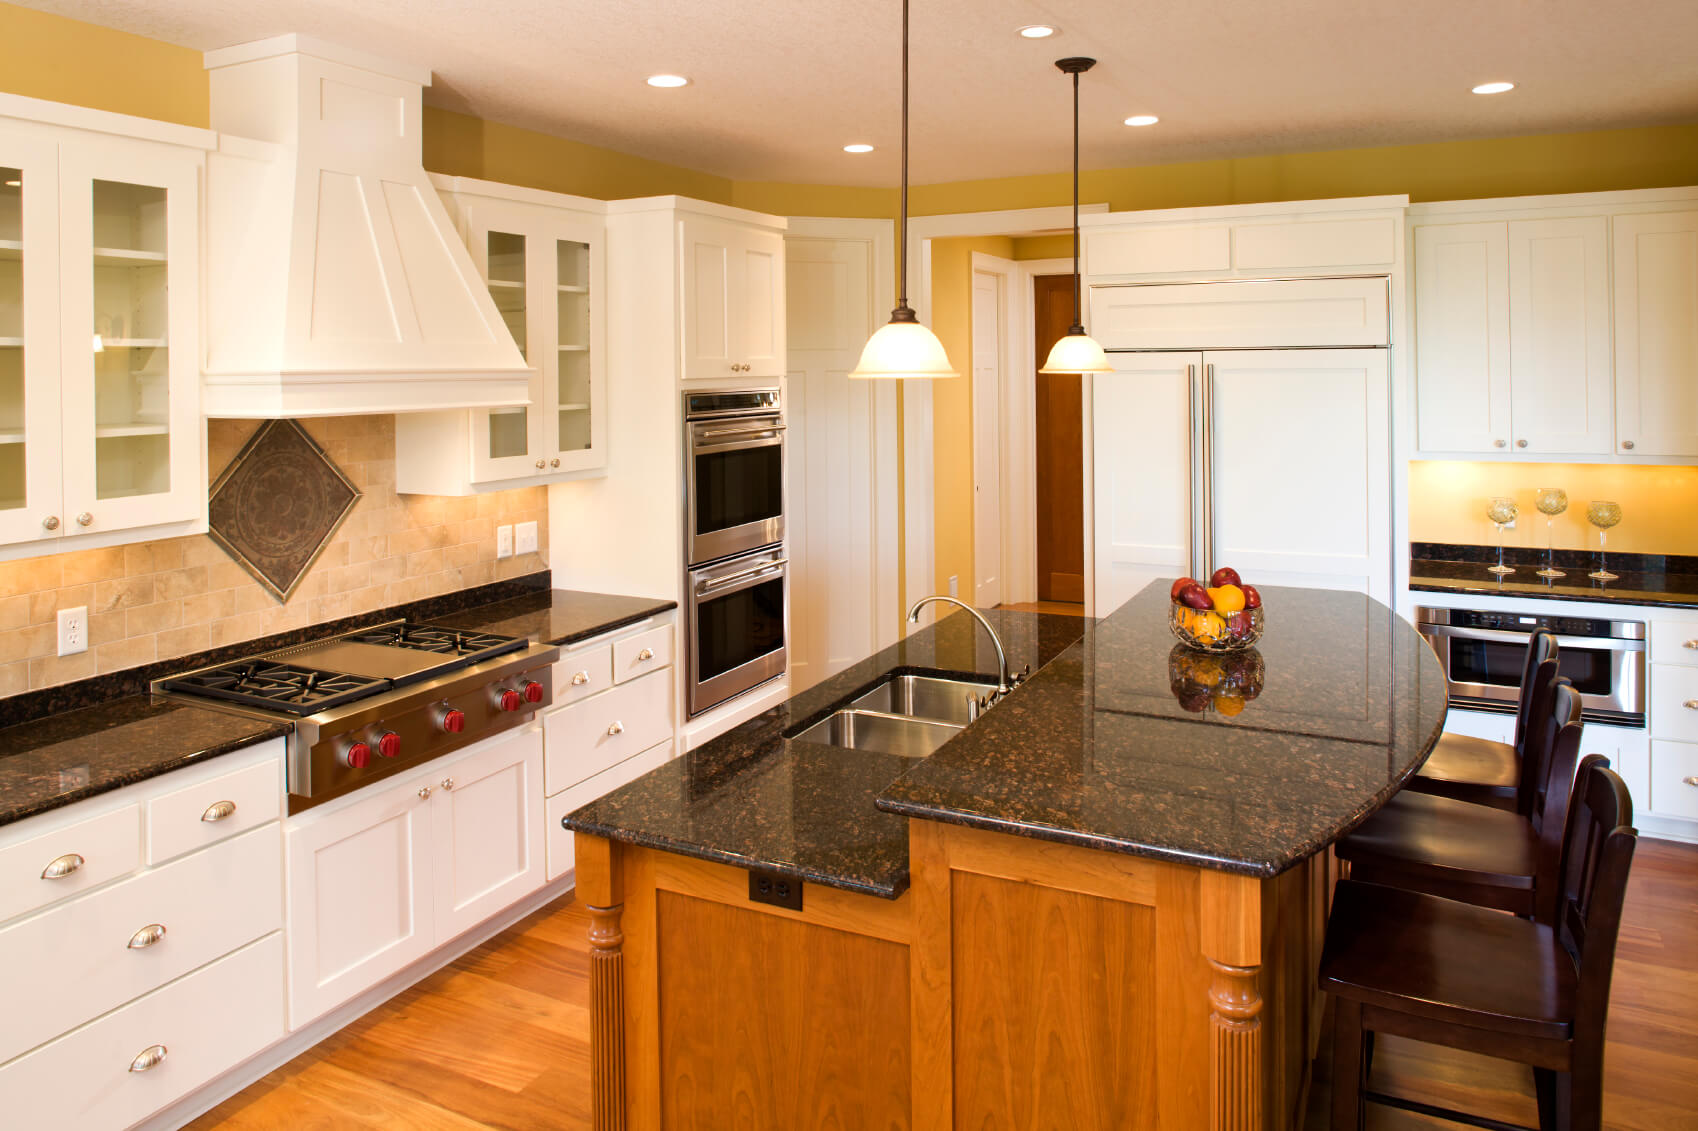 Here we have another two-tiered island adding contrast to a kitchen with warm natural wood and dark marble countertop.